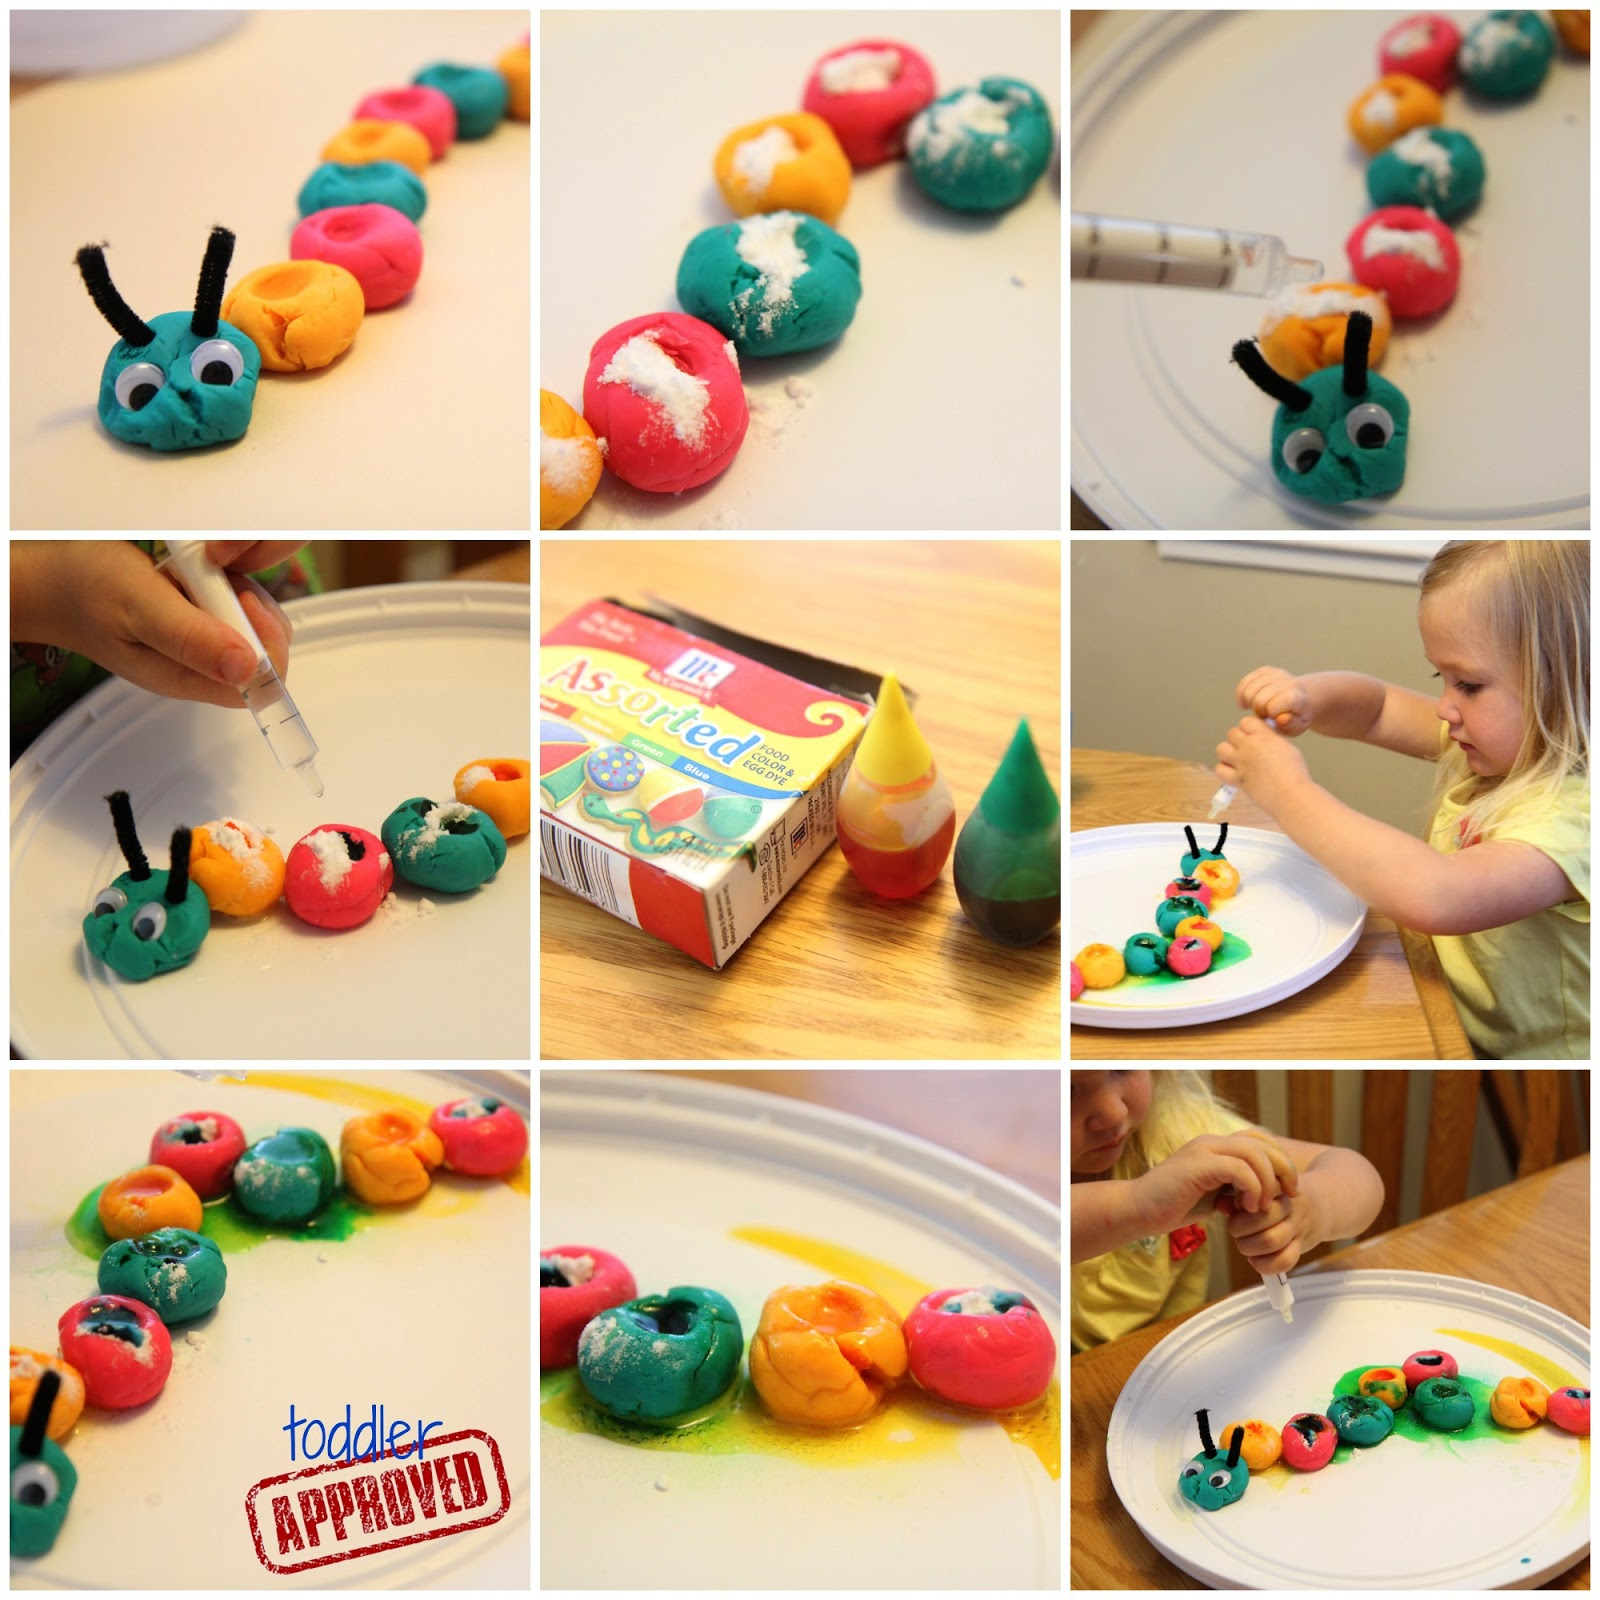 Toddler Approved Fizzing Caterpillar Science Bug Week